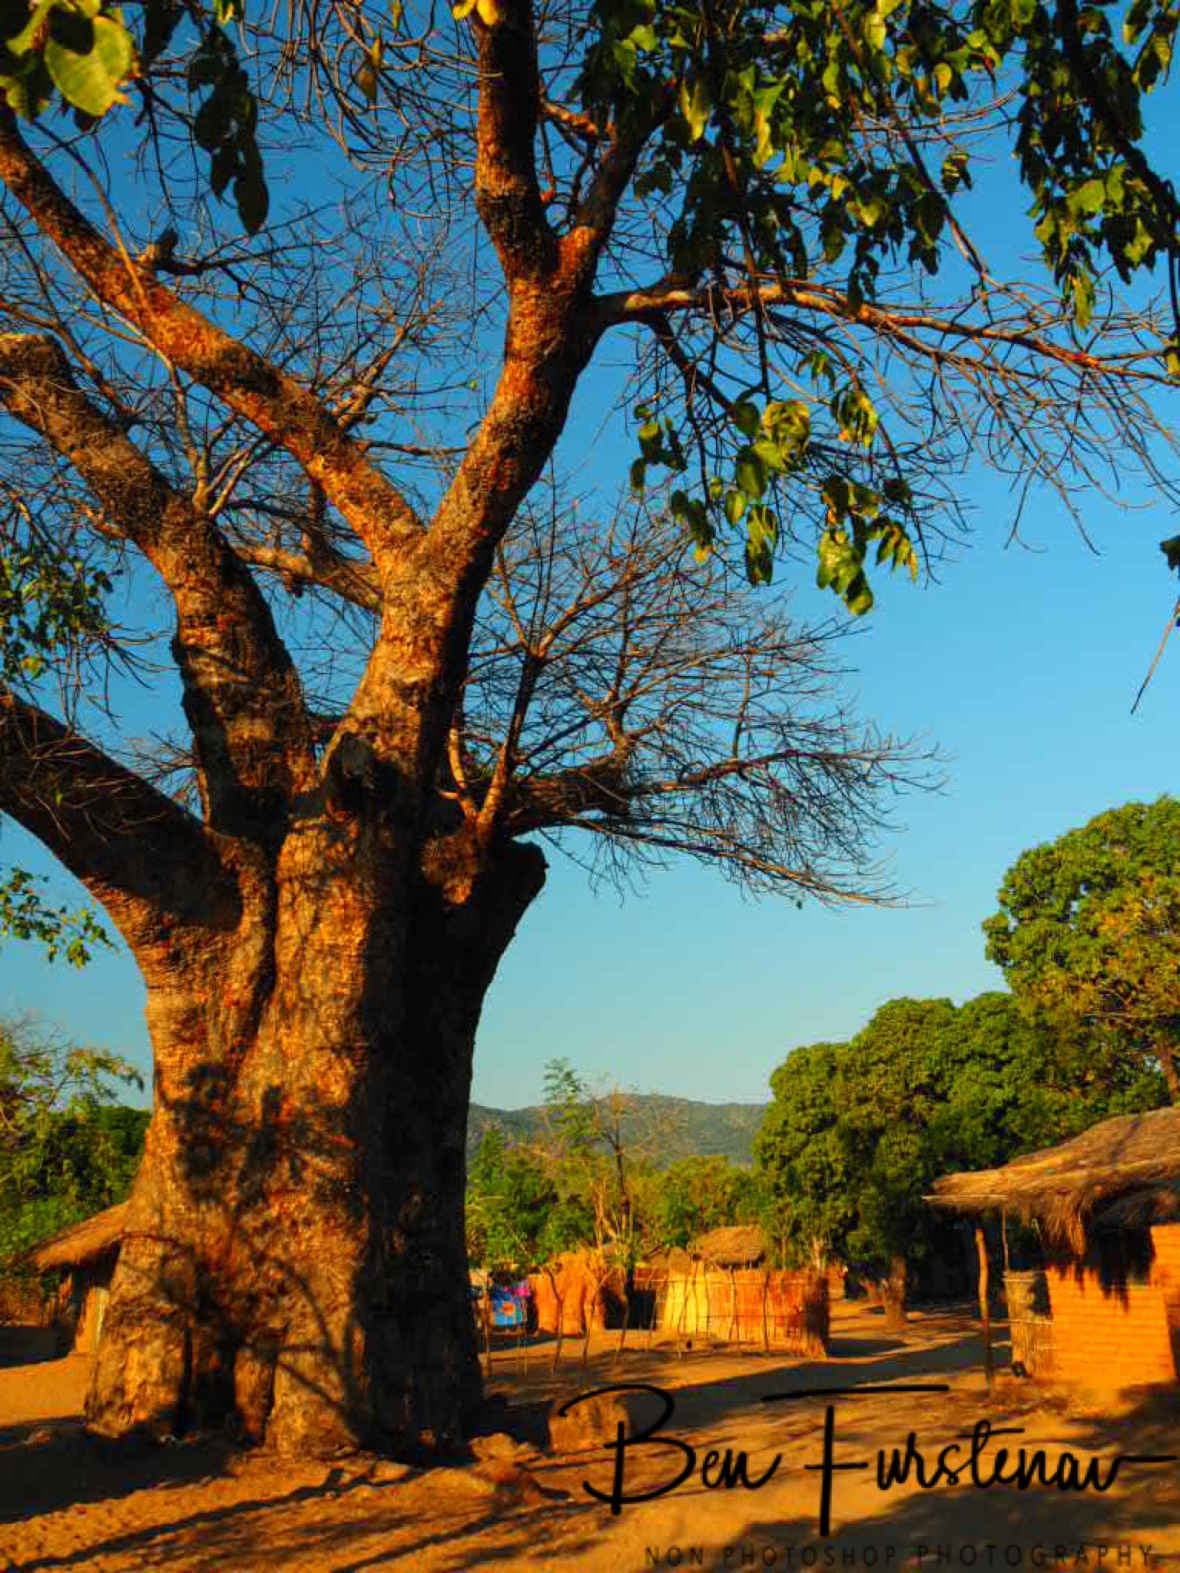 Baobab in middle of Chembe village, Cape Maclear, Lake Malawi, Malawi